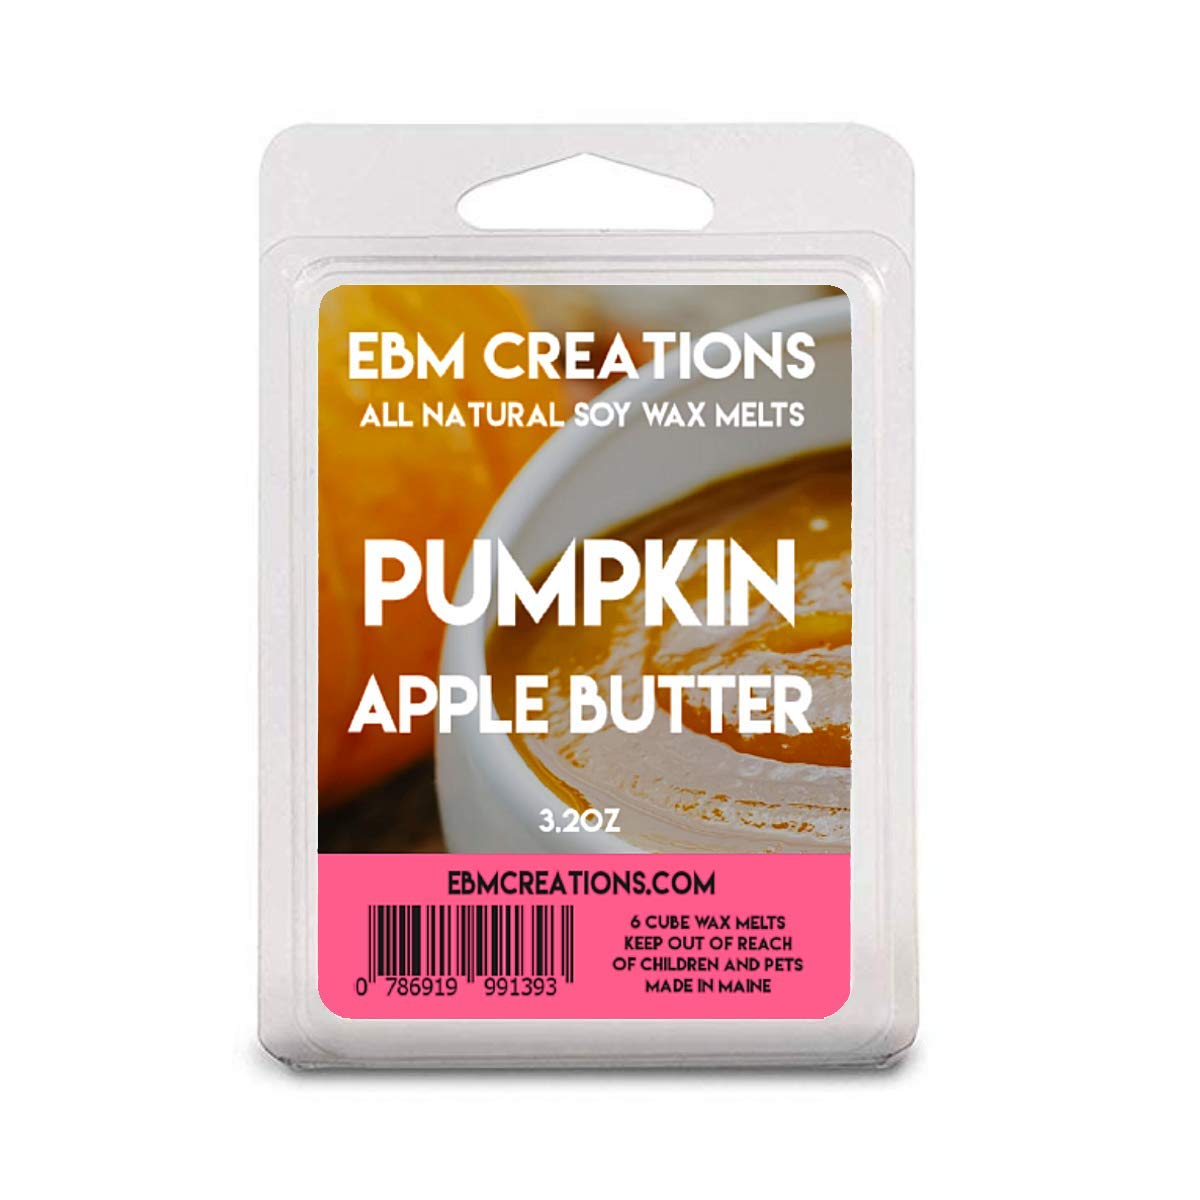 Pumpkin Apple Butter - Scented All Natural Soy Wax Melts - 6 Cube Clamshell 3.2oz Highly Scented!